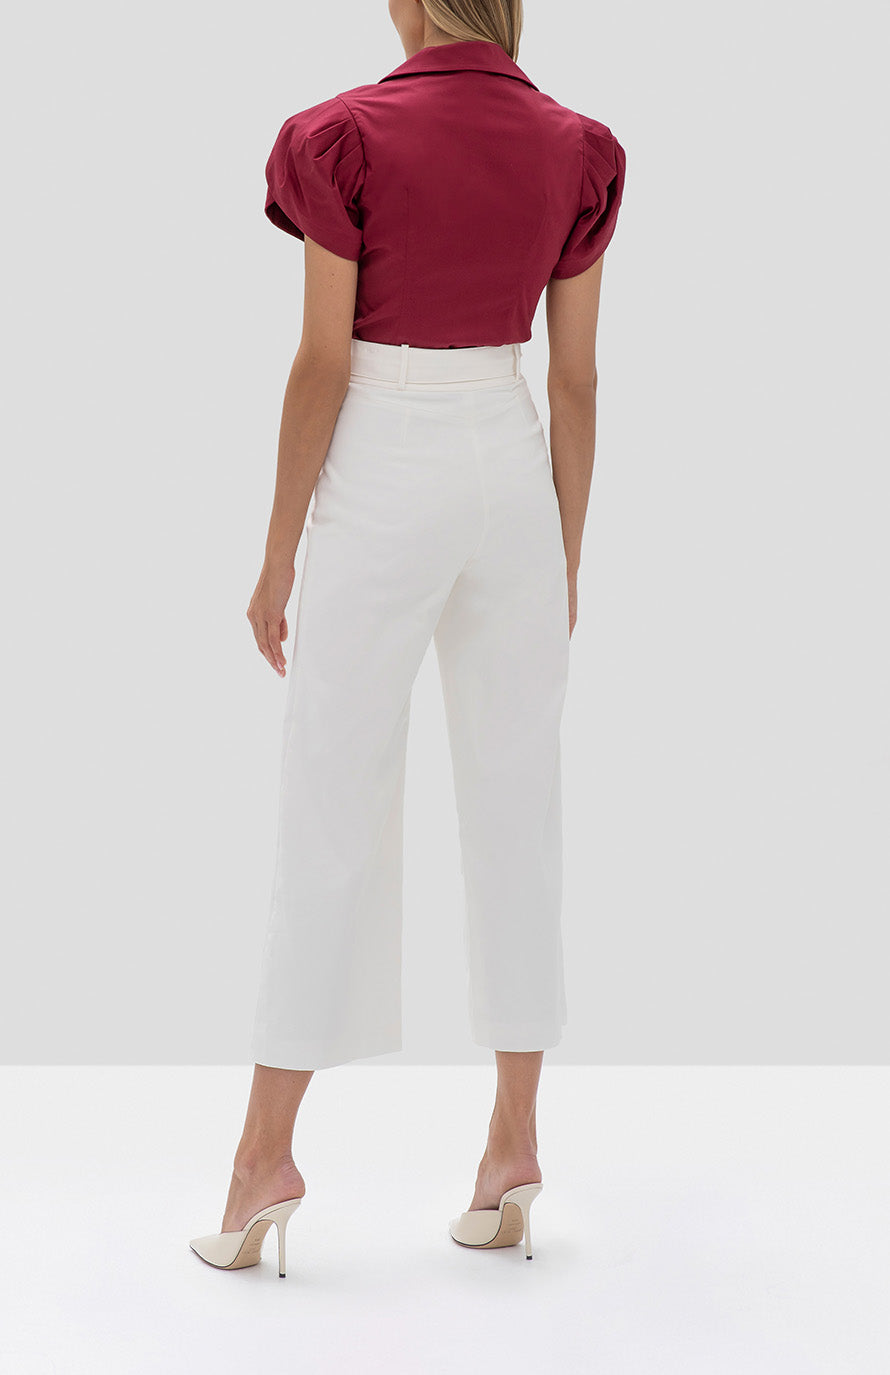 Alexis Cass Top in Rasberry from the Fall Winter 2019 Ready To Wear Collection and Everette Pant in White from the Spring Summer 2019 Ready To Wear Collection - Rear View